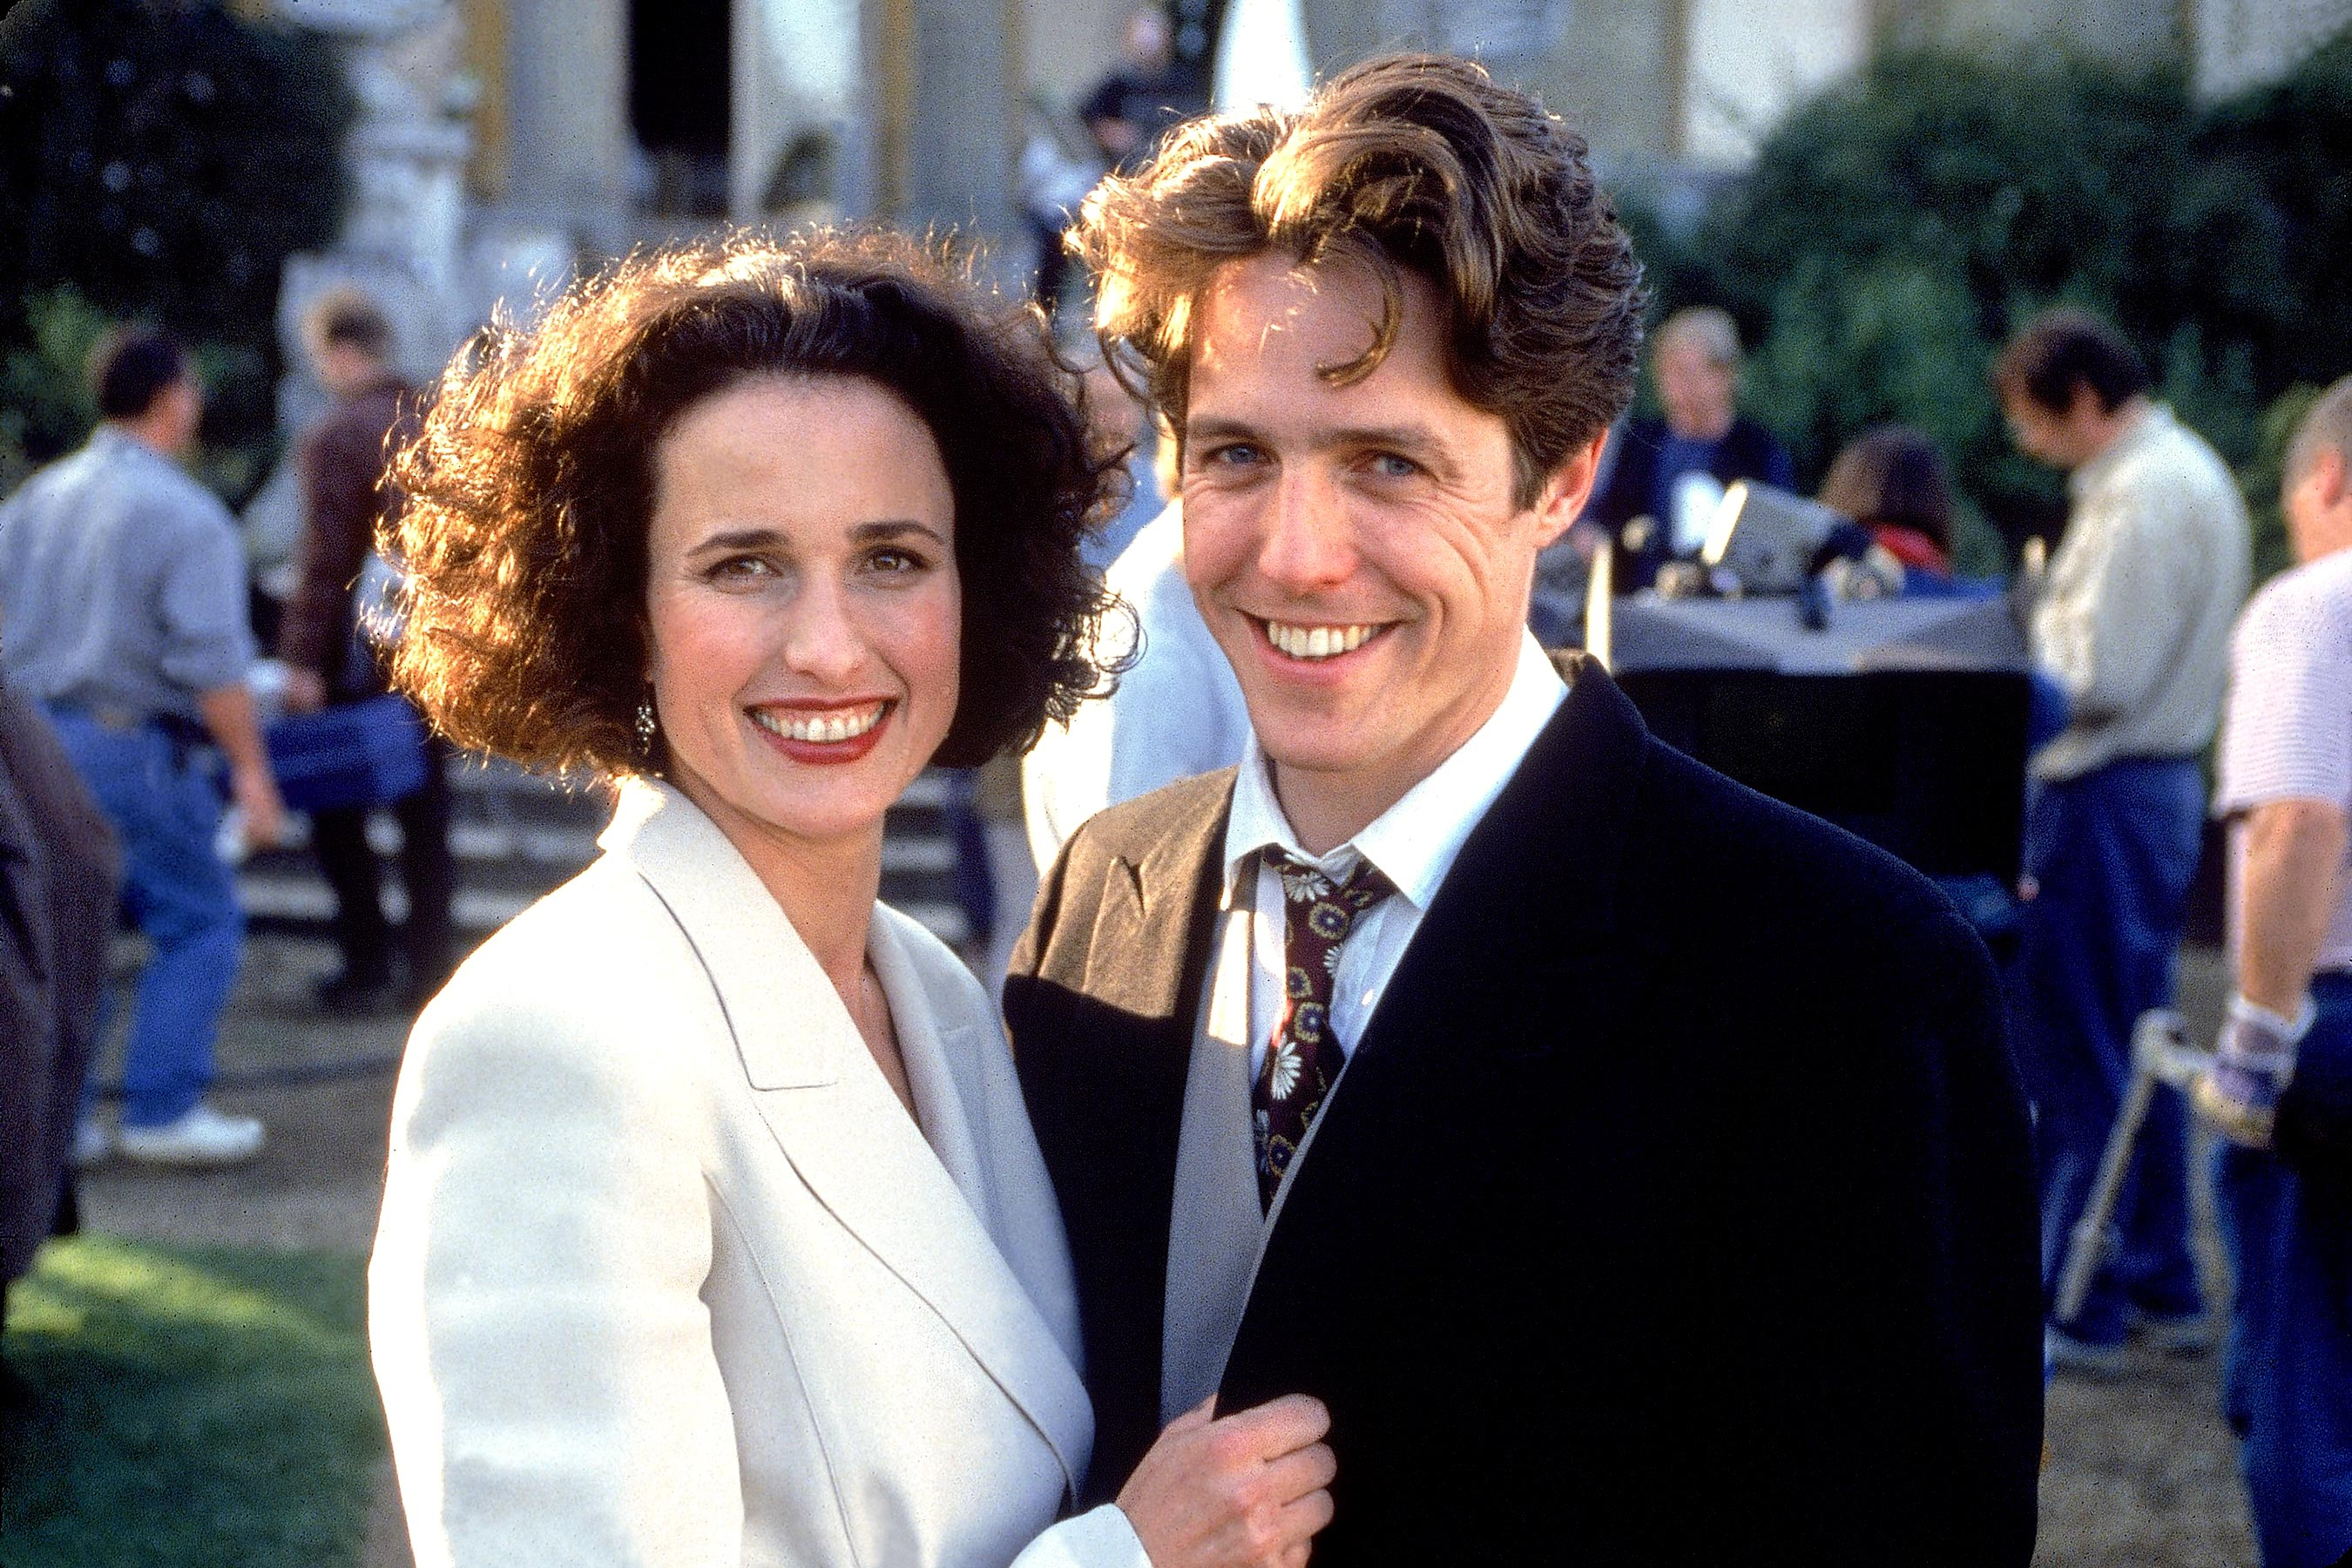 Four Weddings and a Funeral: Hugh Grant, Andie MacDowell reuniting for Red Nose Day